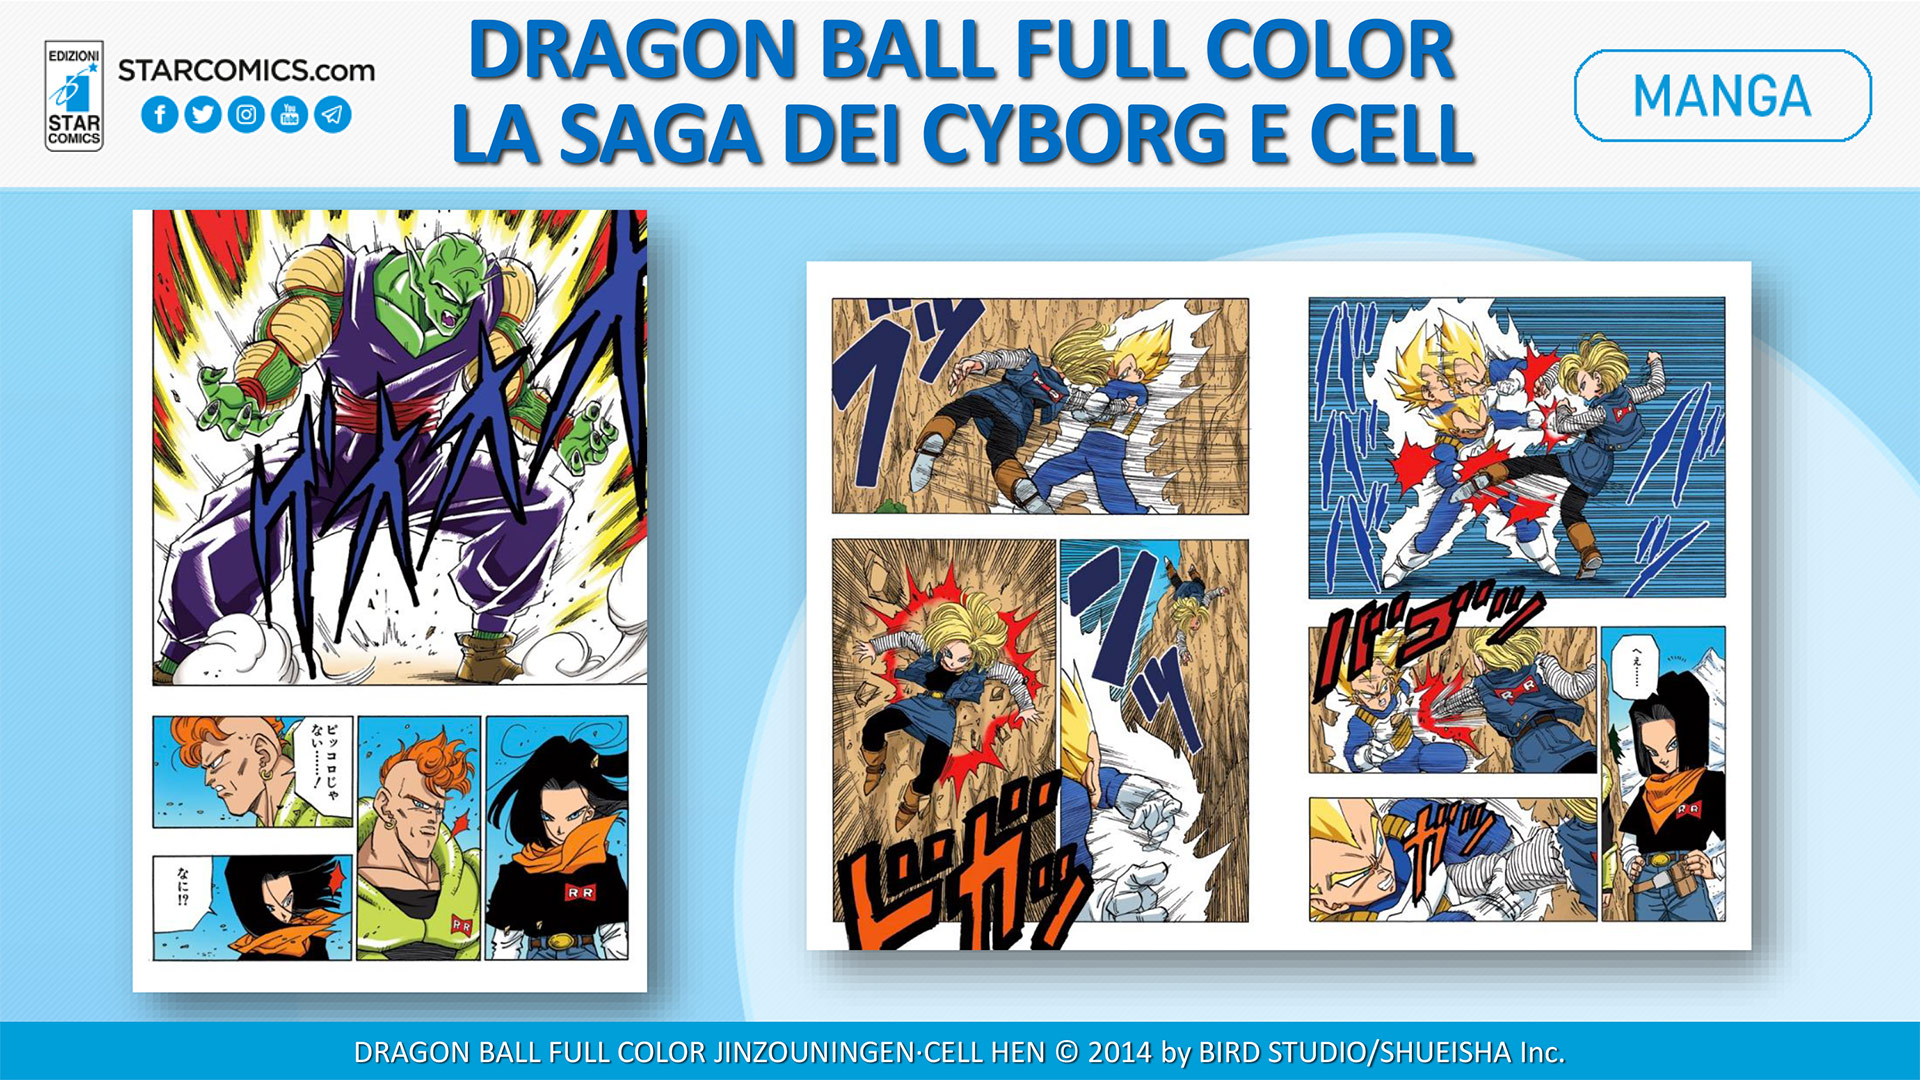 dragon ball full color saga cyborg cell